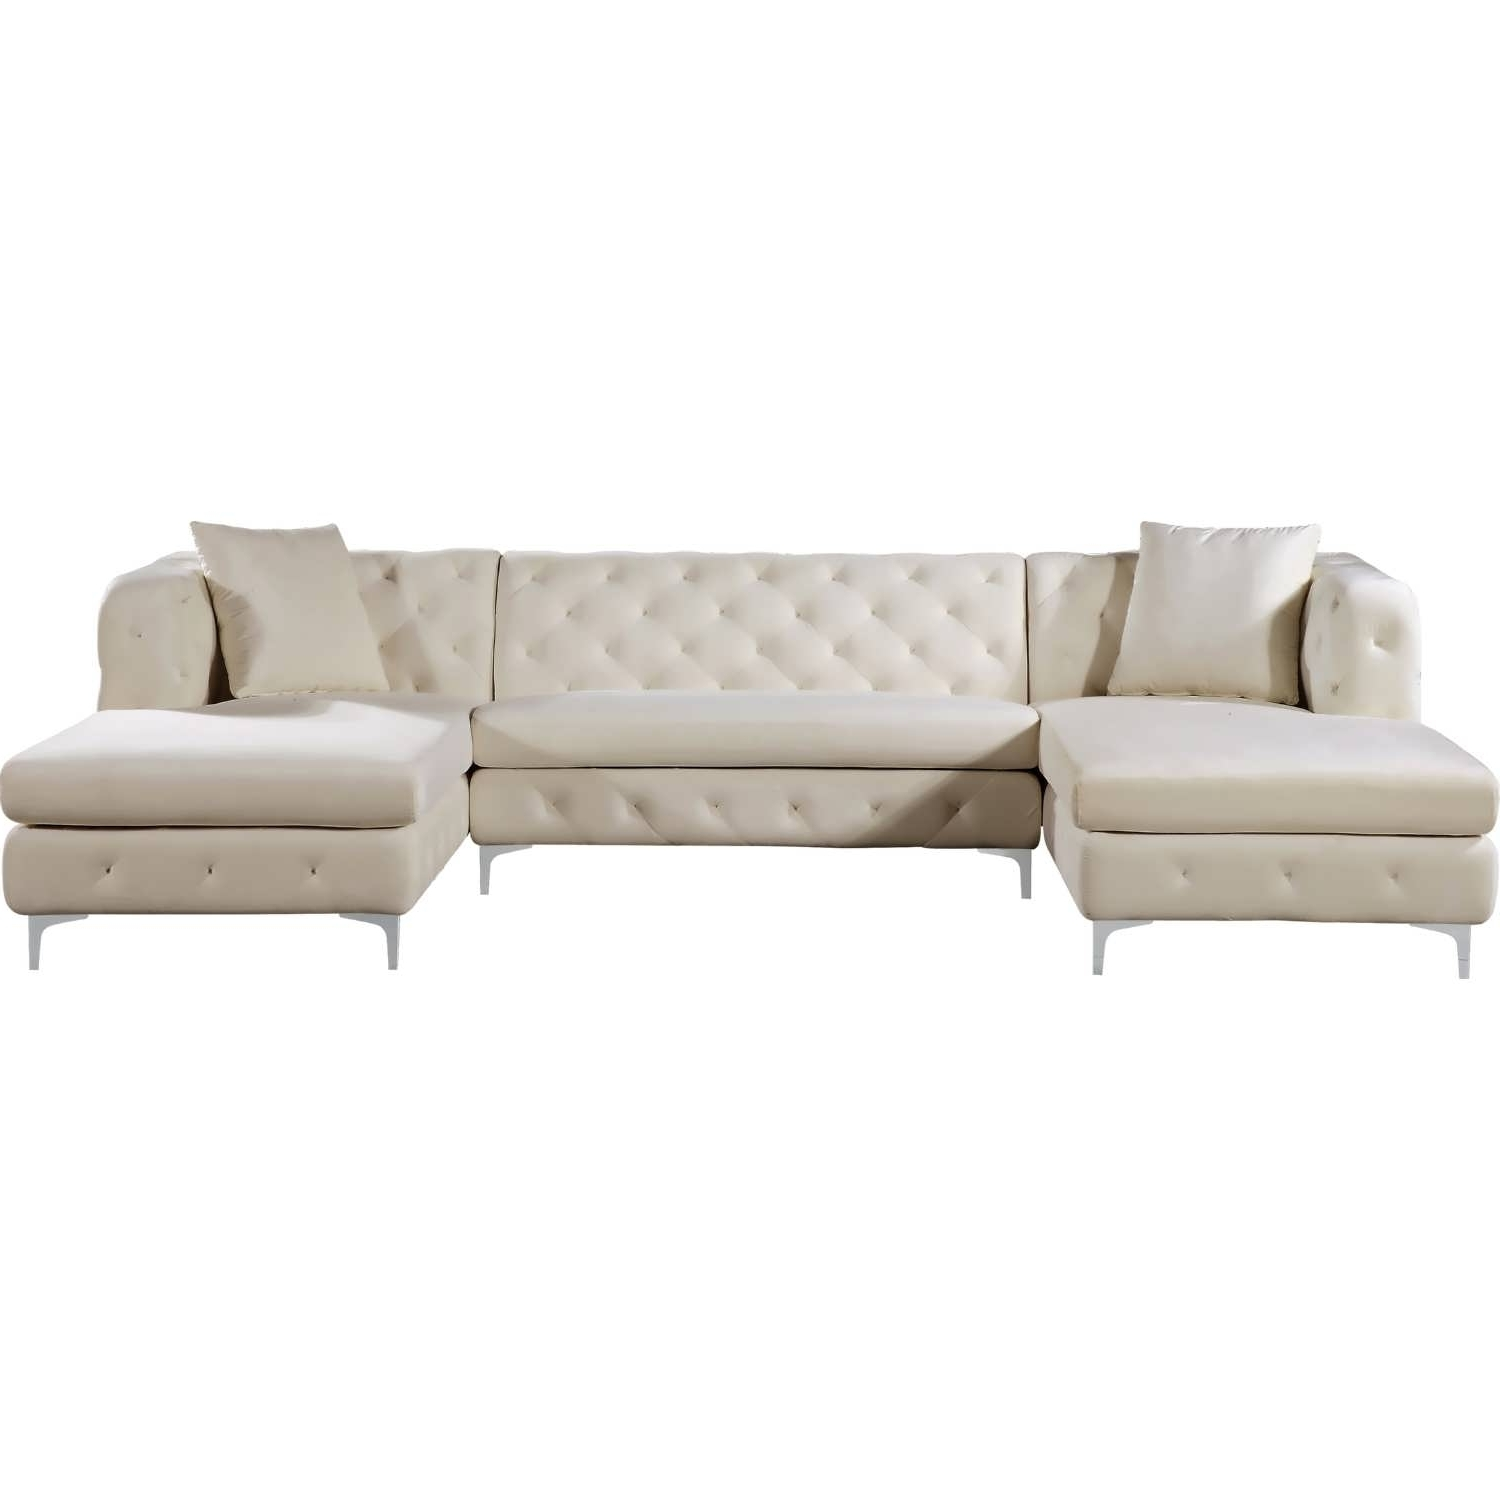 Sofa : Sectional Sofa With Chaise Small Chaise Blue Sectional Sofa For Most Popular Small Chaise Sofas (View 5 of 15)